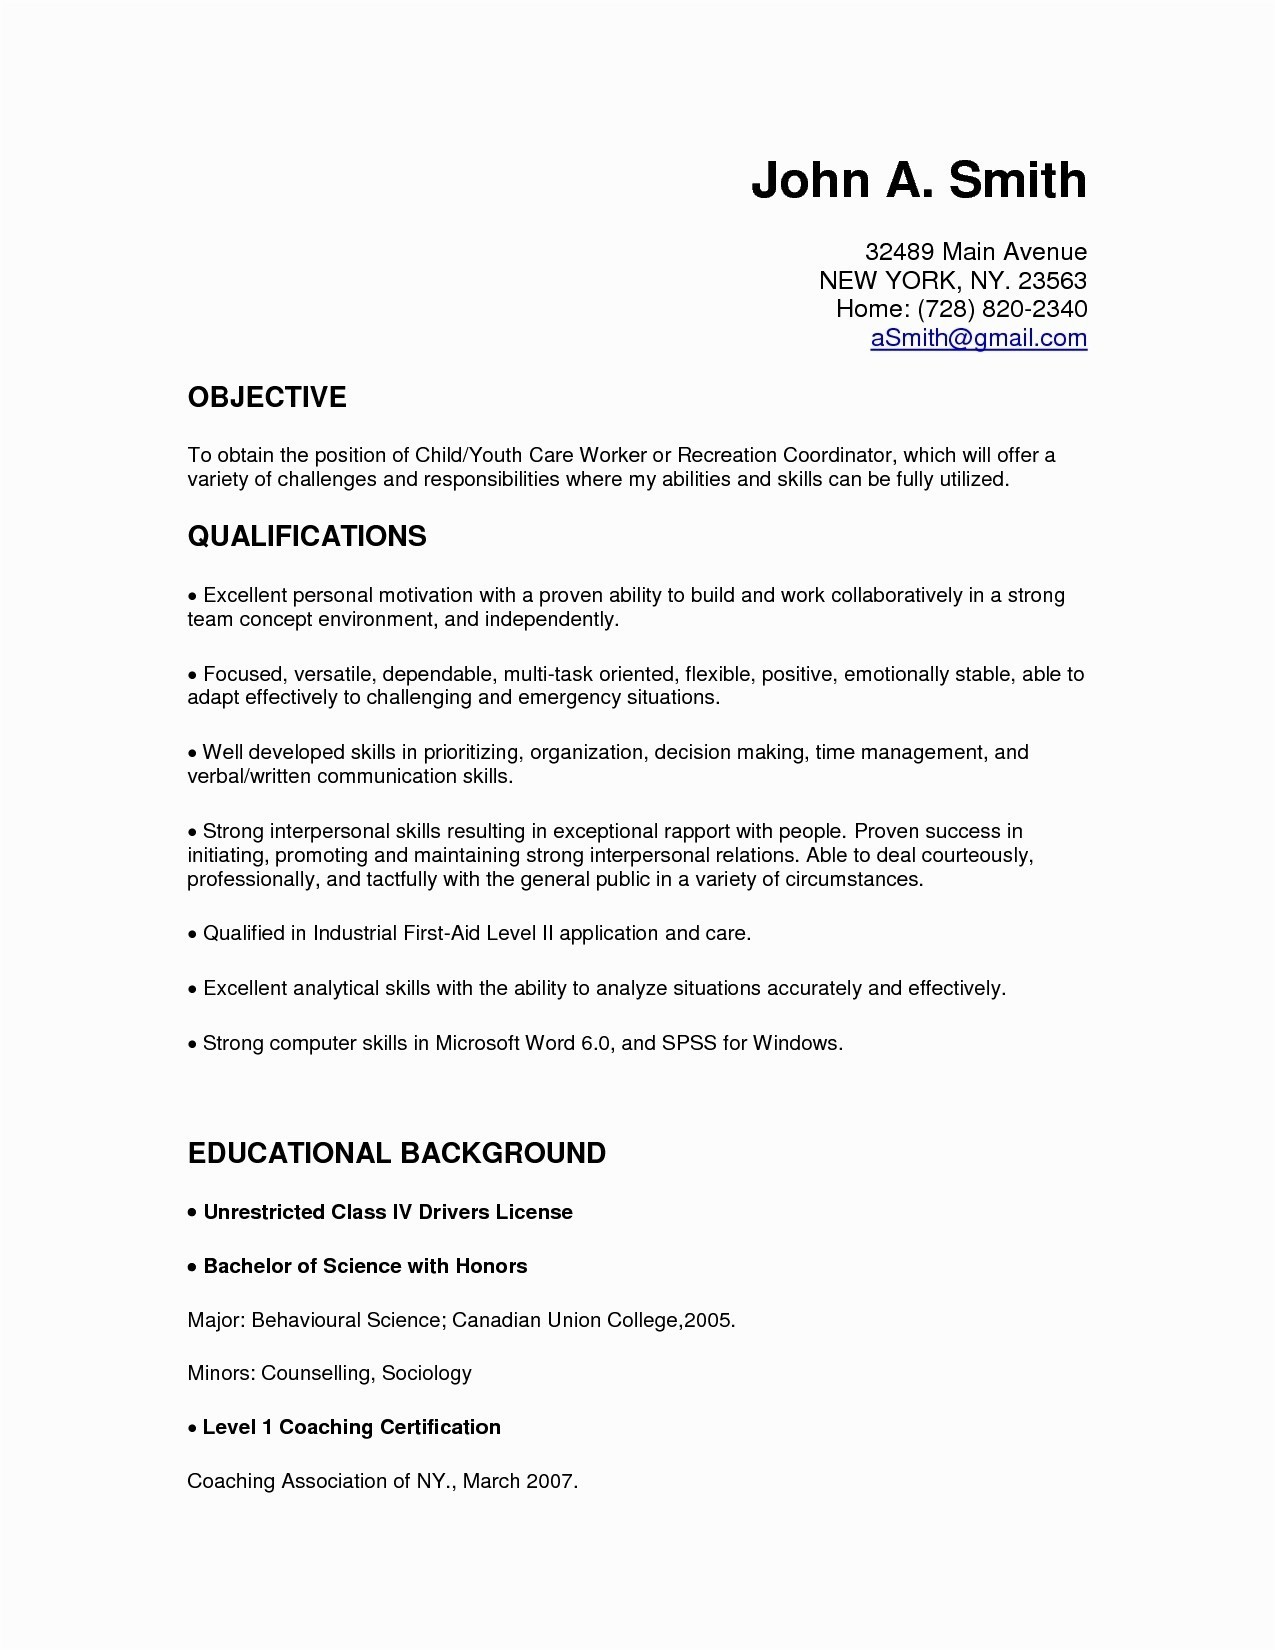 Microsoft Office Resume Templates Downloads Inspirational Resume and Template 55 Phenomenal Job Resume Template